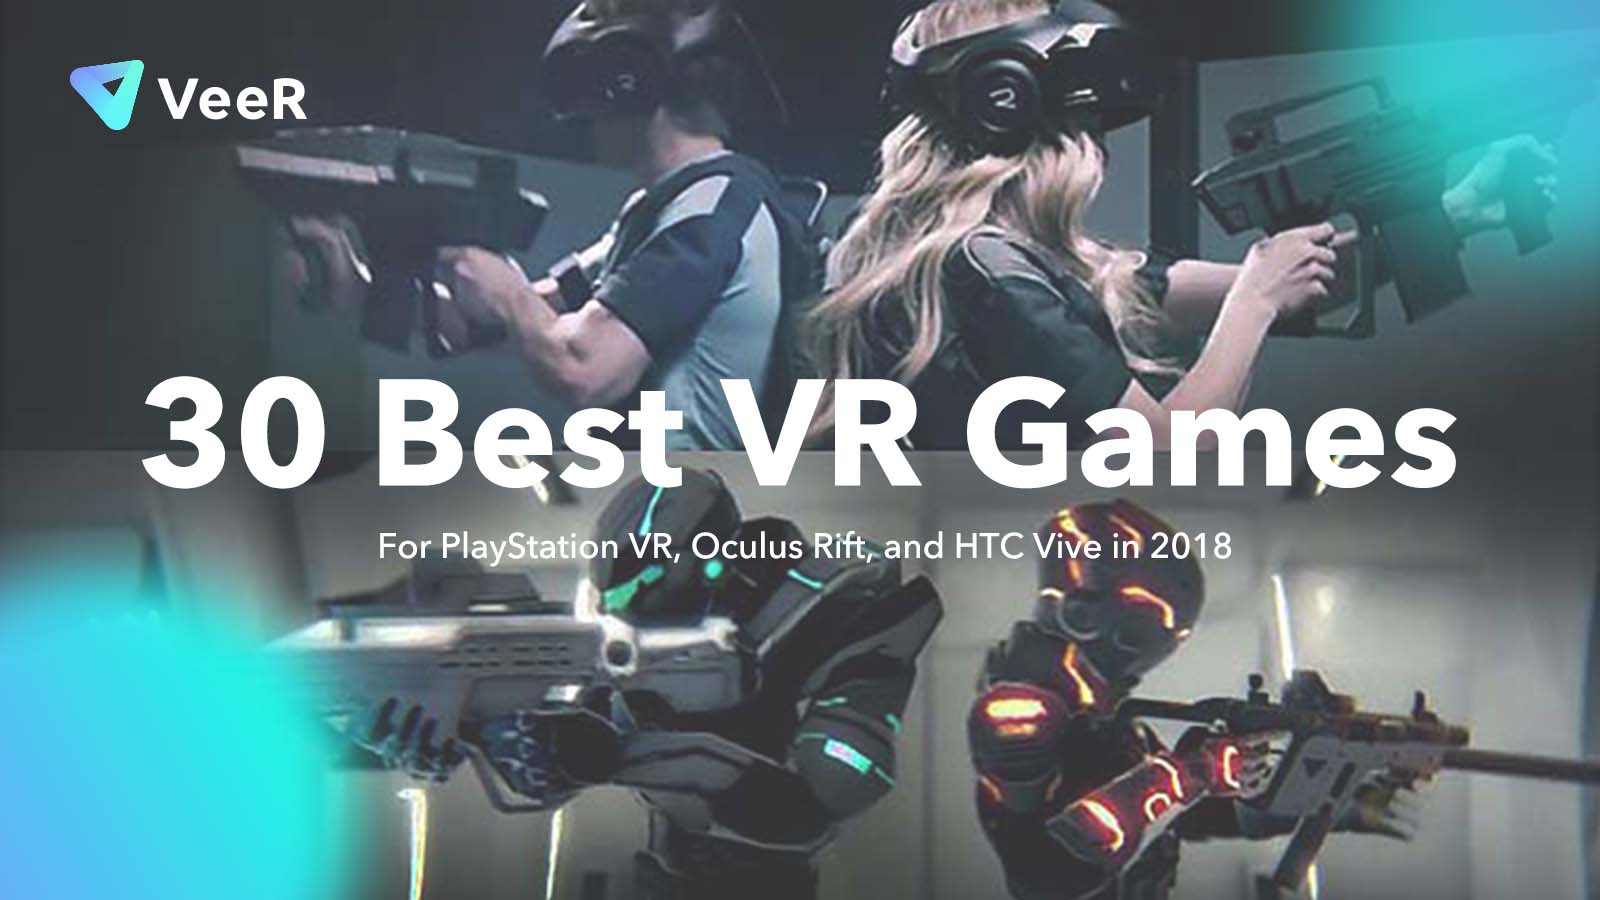 30 Best VR Games for PlayStation VR, Oculus Rift, and HTC